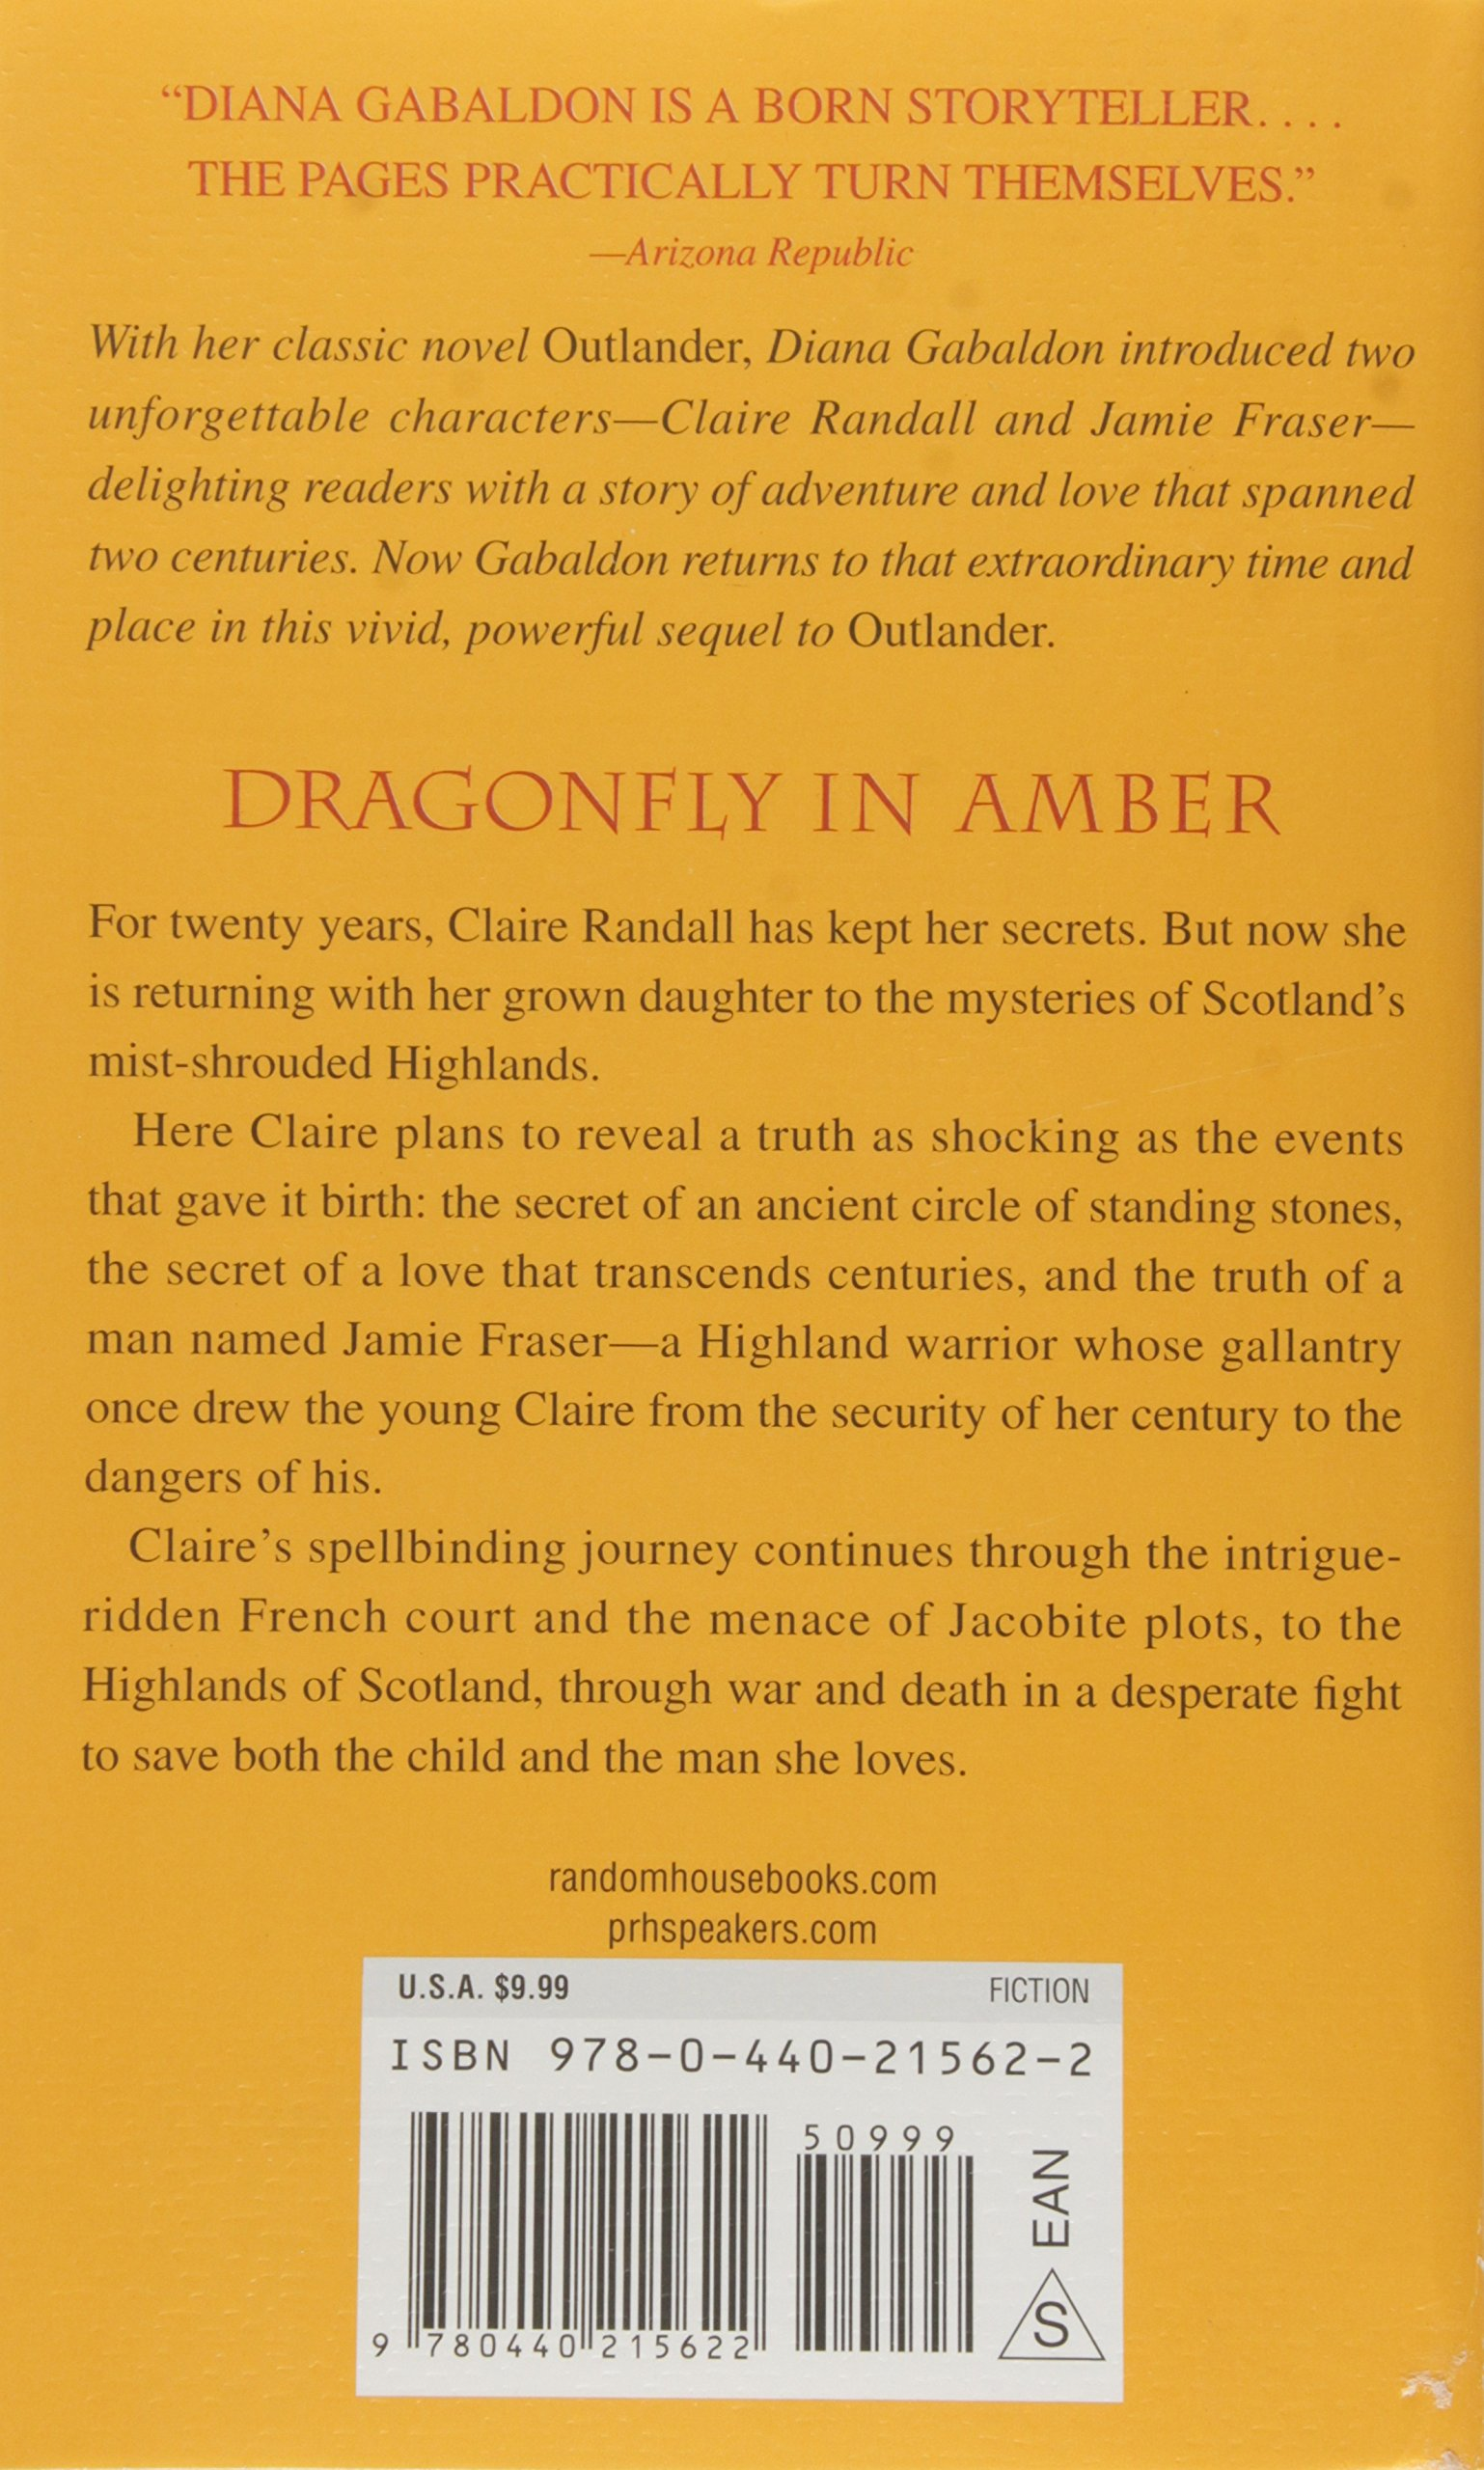 Dragonfly in amber a novel outlander diana gabaldon dragonfly in amber a novel outlander diana gabaldon 9780440215622 amazon books fandeluxe Gallery